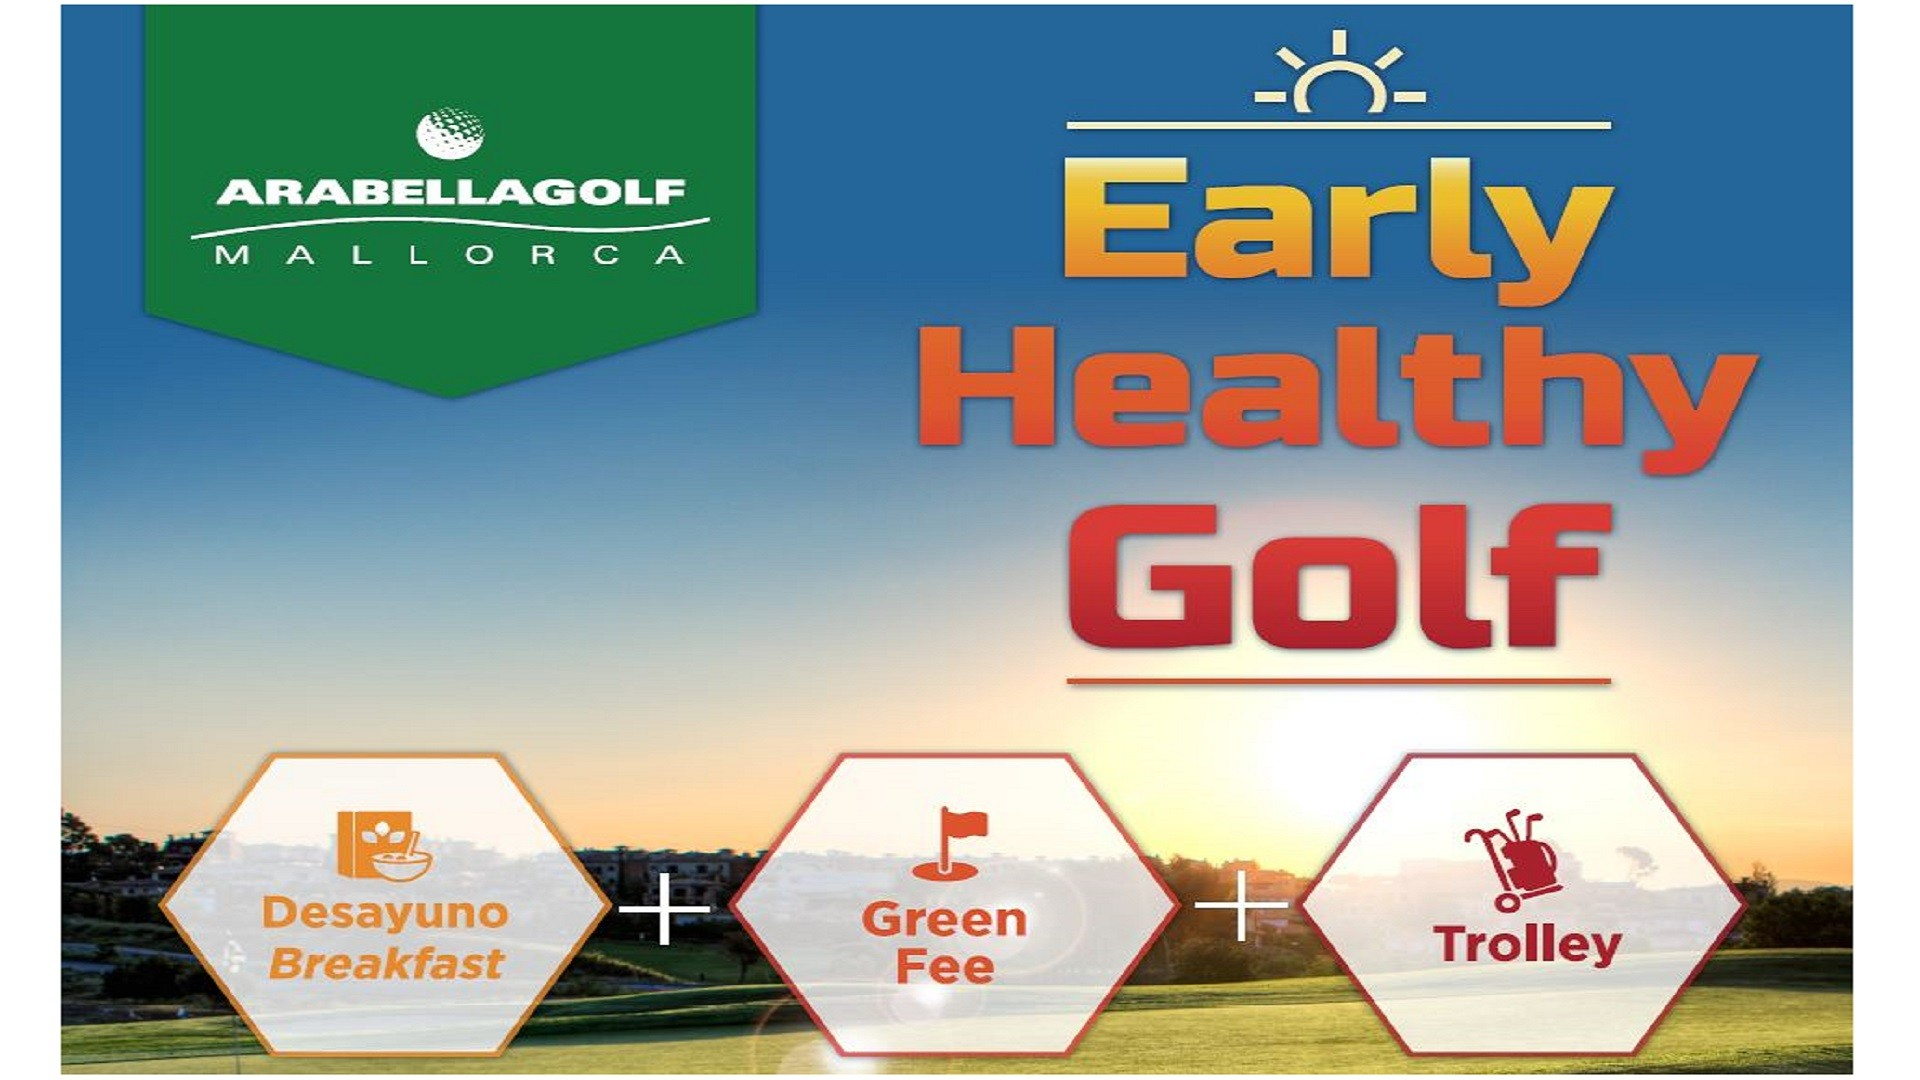 Early Healthy Golf